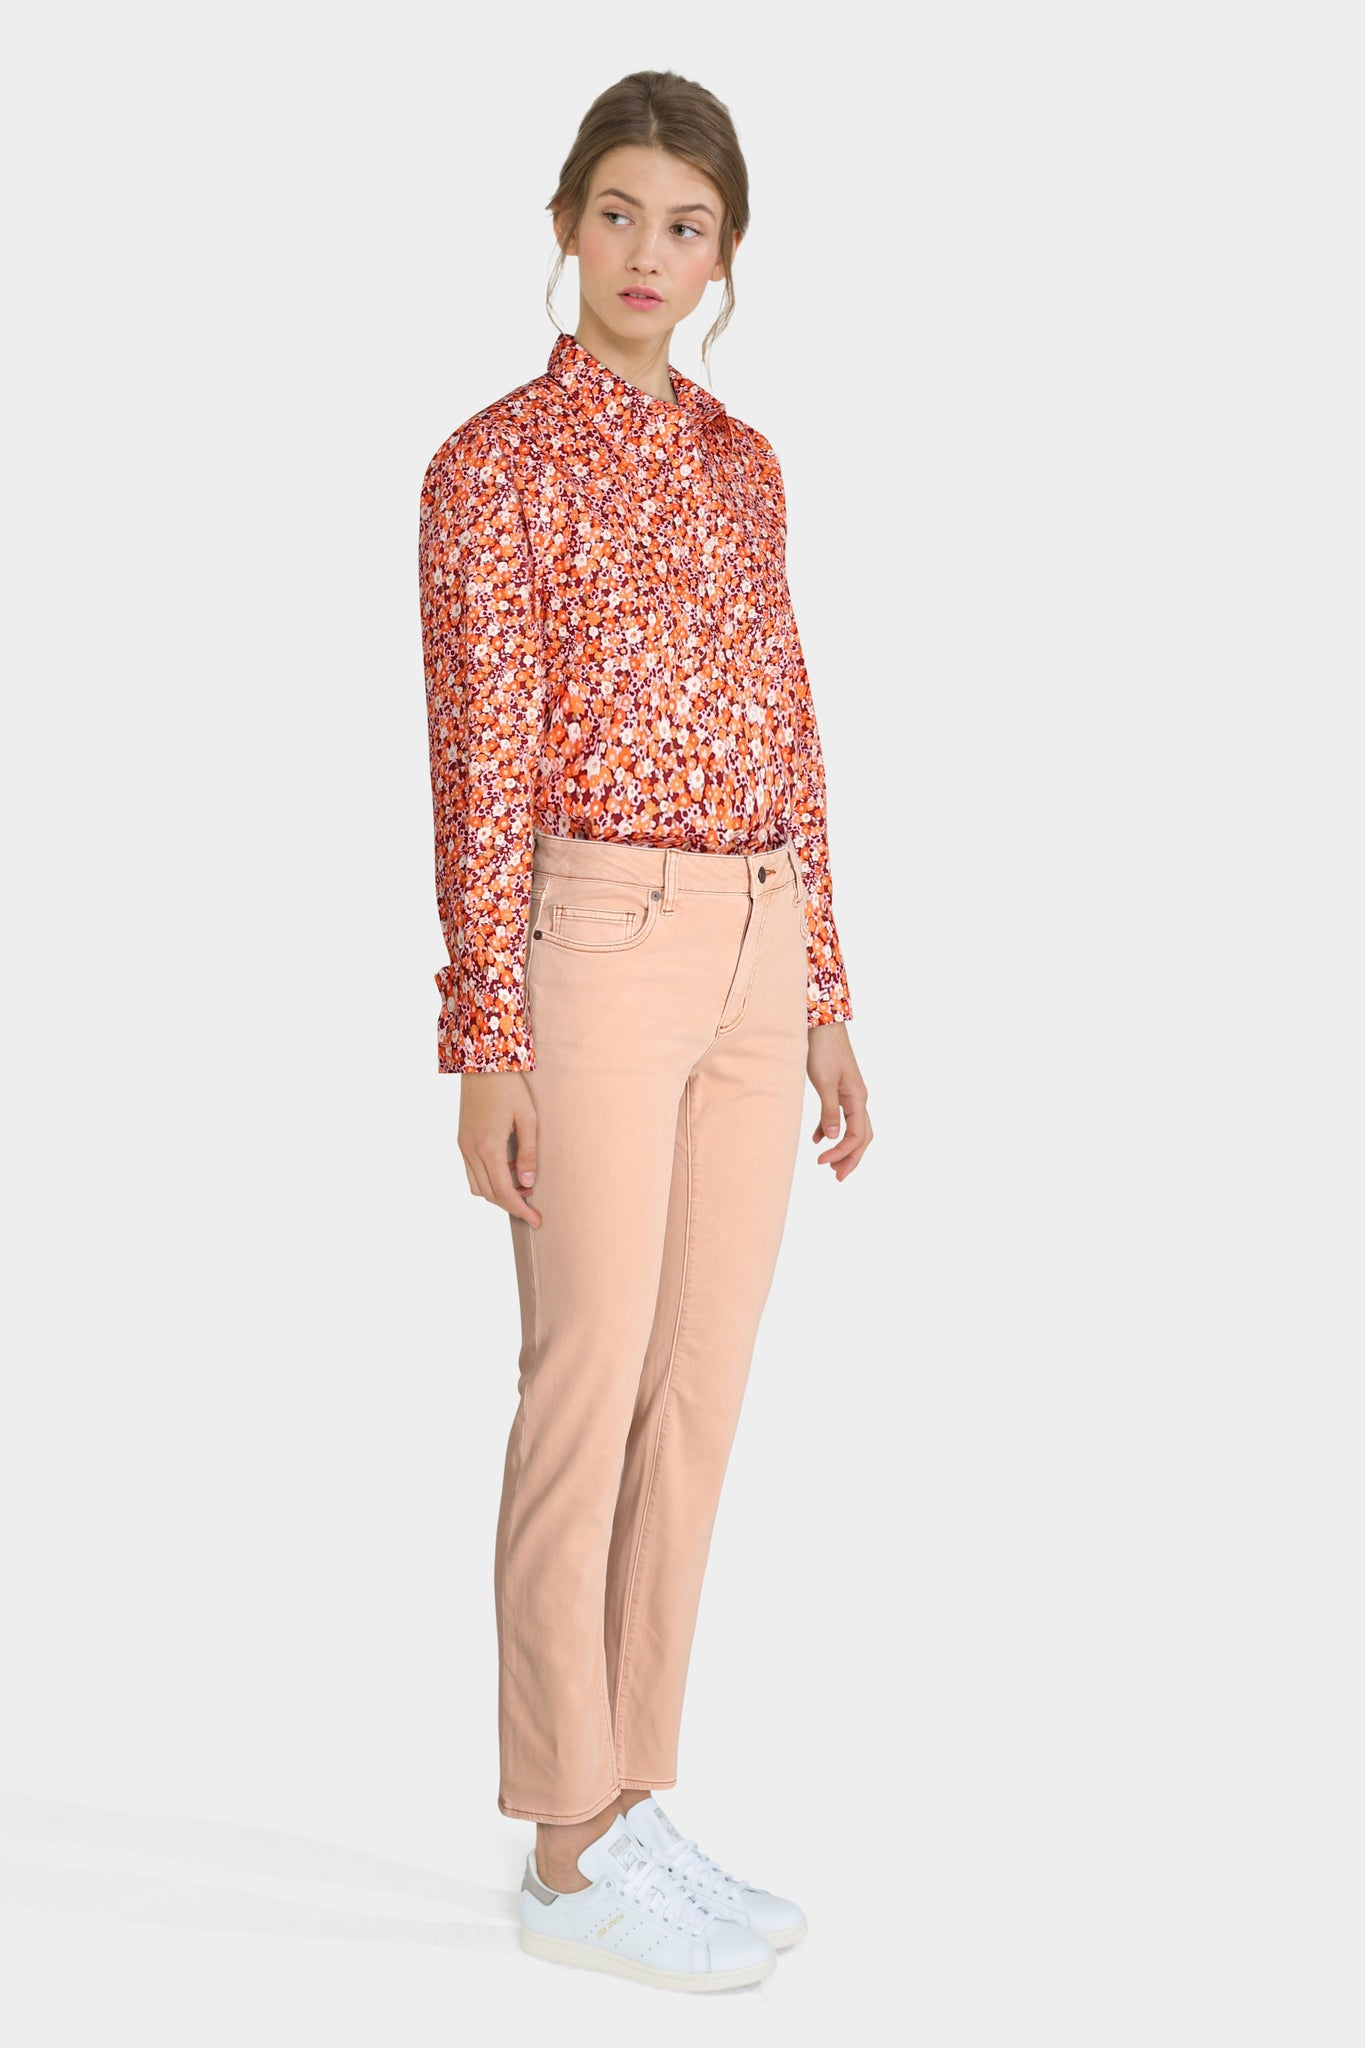 Floral Shirt With Apricot Jeans